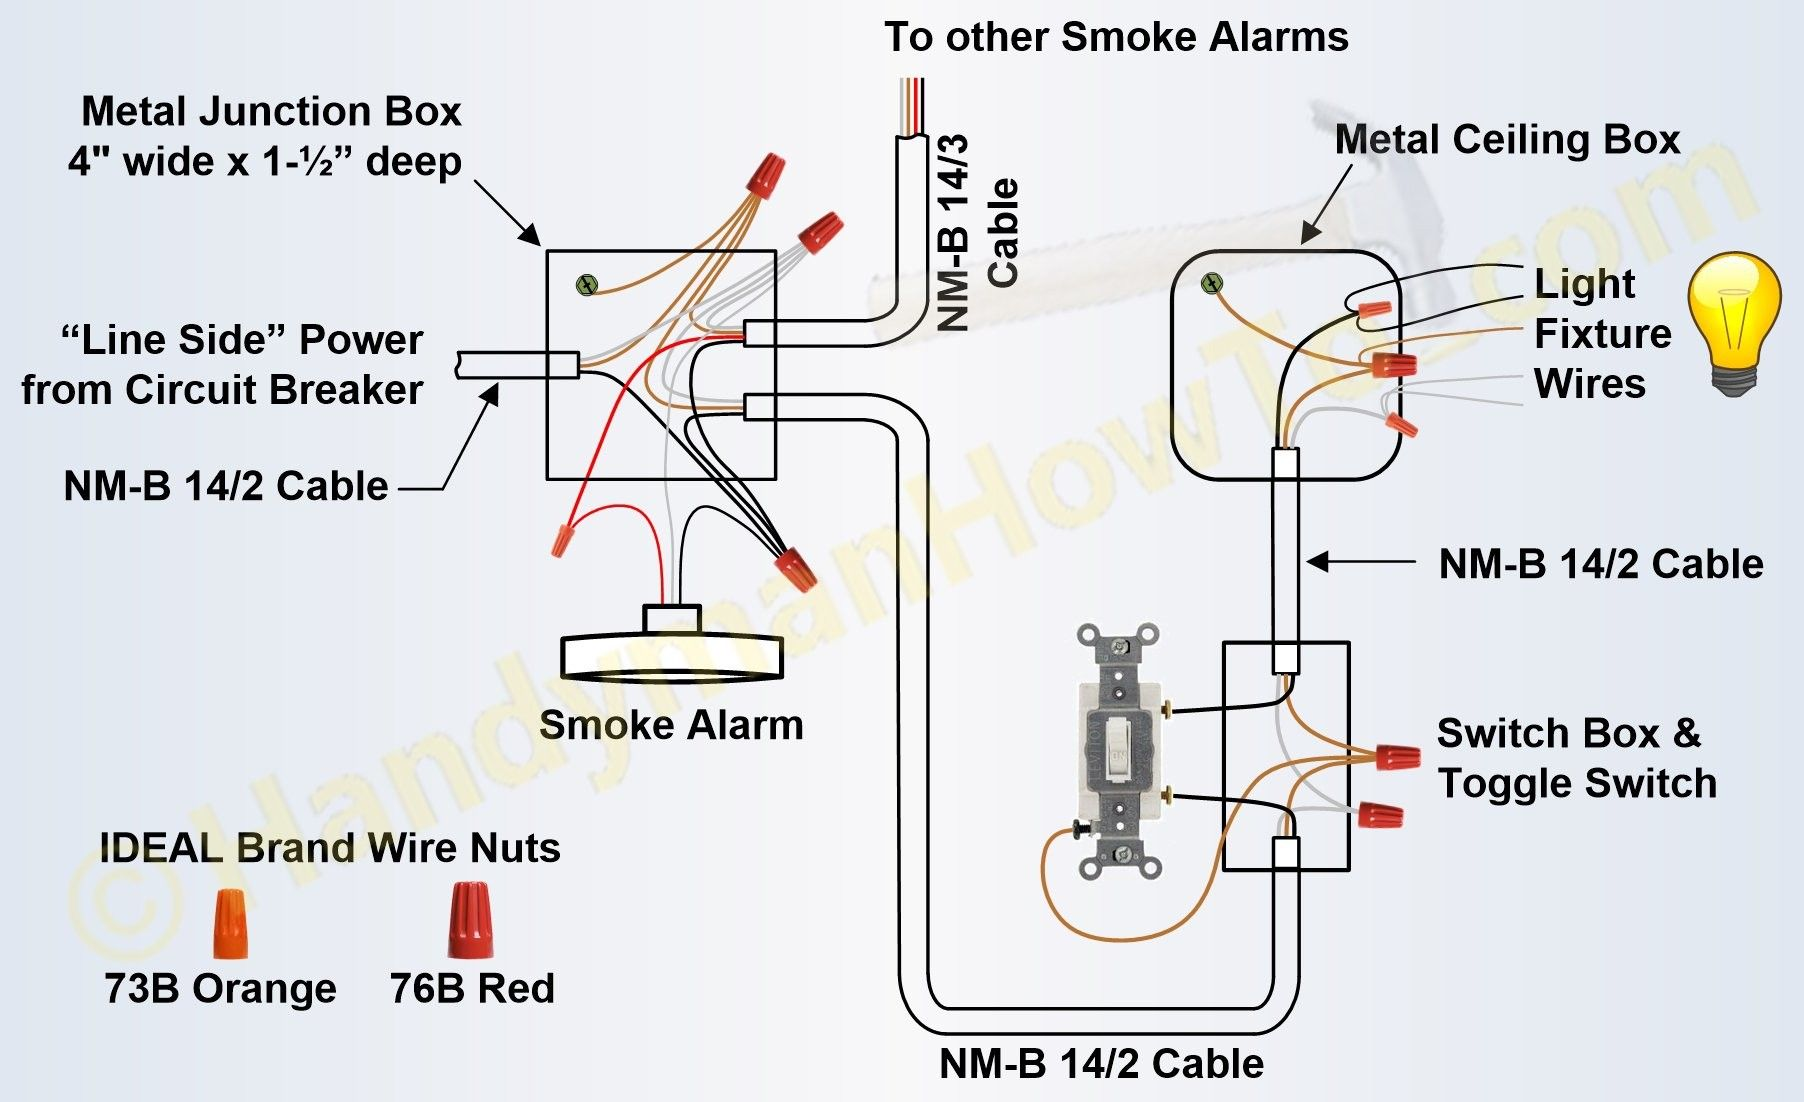 Unique Fire Alarm System Control Module Wiring Diagram Diagram Diagramtemplate Diagramsample Smoke Alarms Alarm Systems For Home Home Security Systems